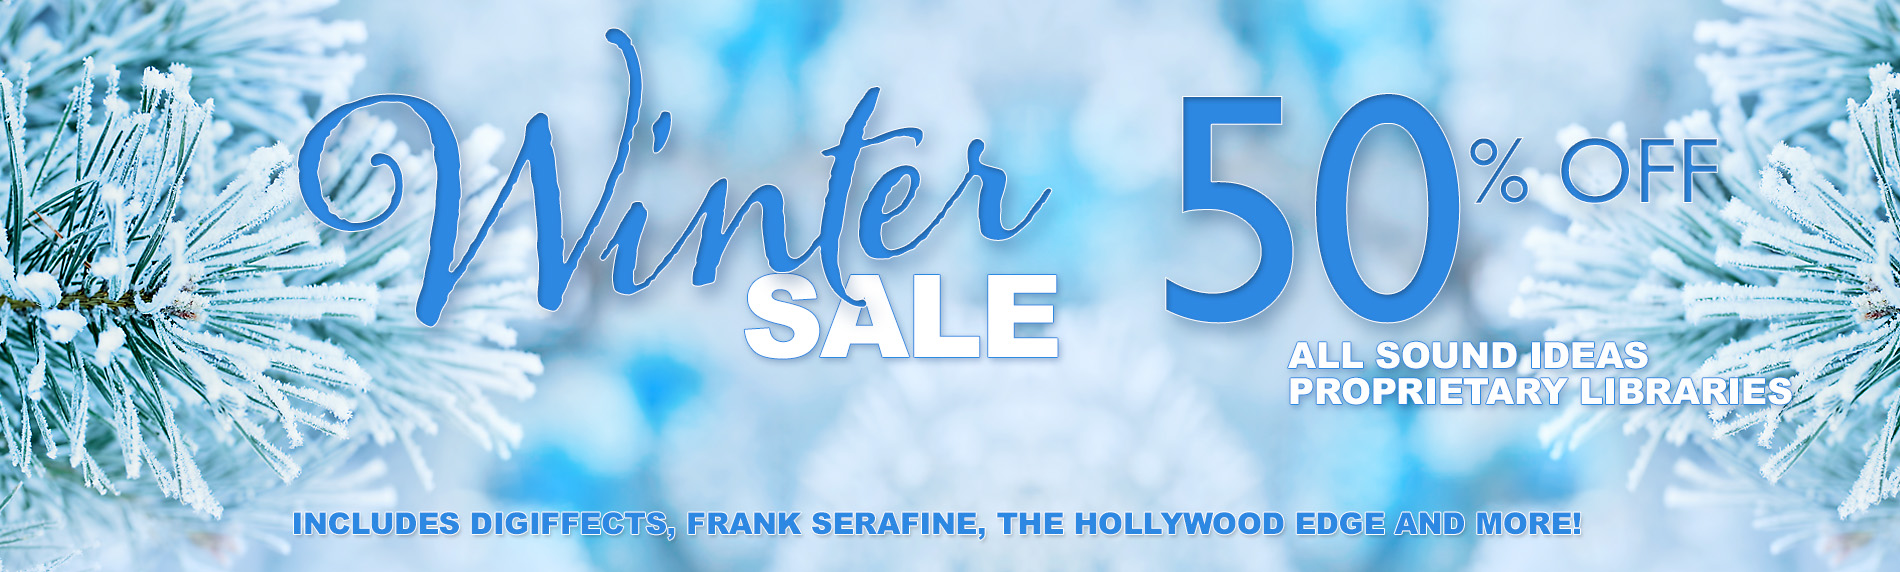 Sound Ideas Winter Sale! Get 50% off ALL Sound Ideas Proprietary Products!